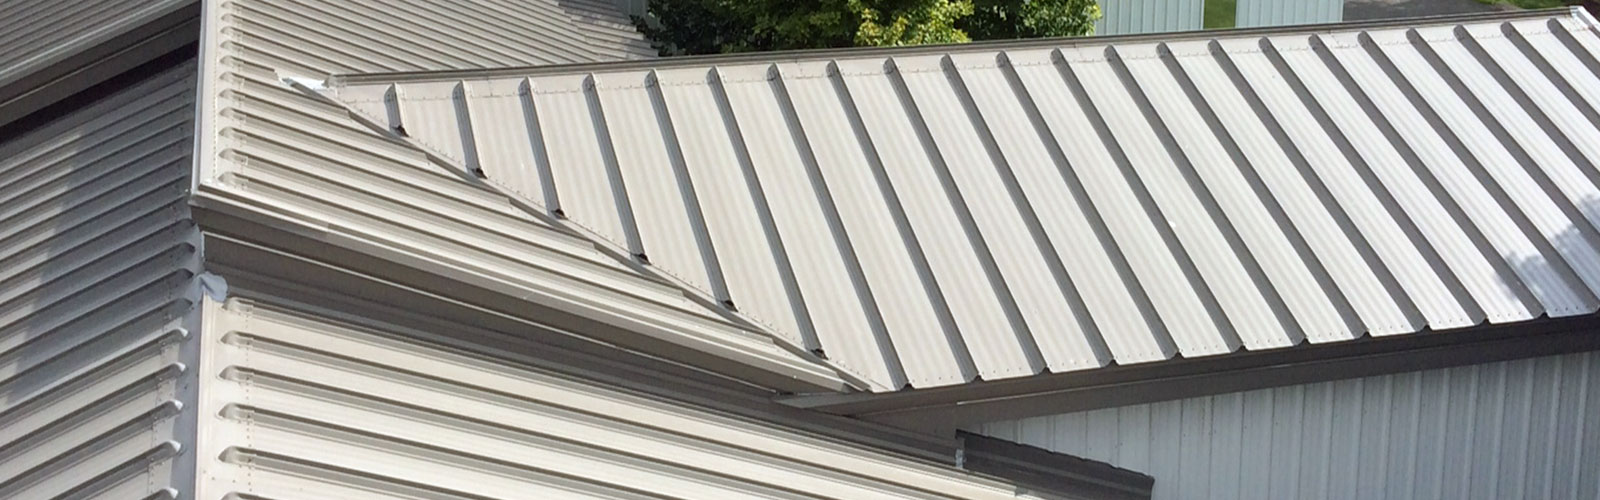 Metal Roofing North Myrtle Beach Roofing Company